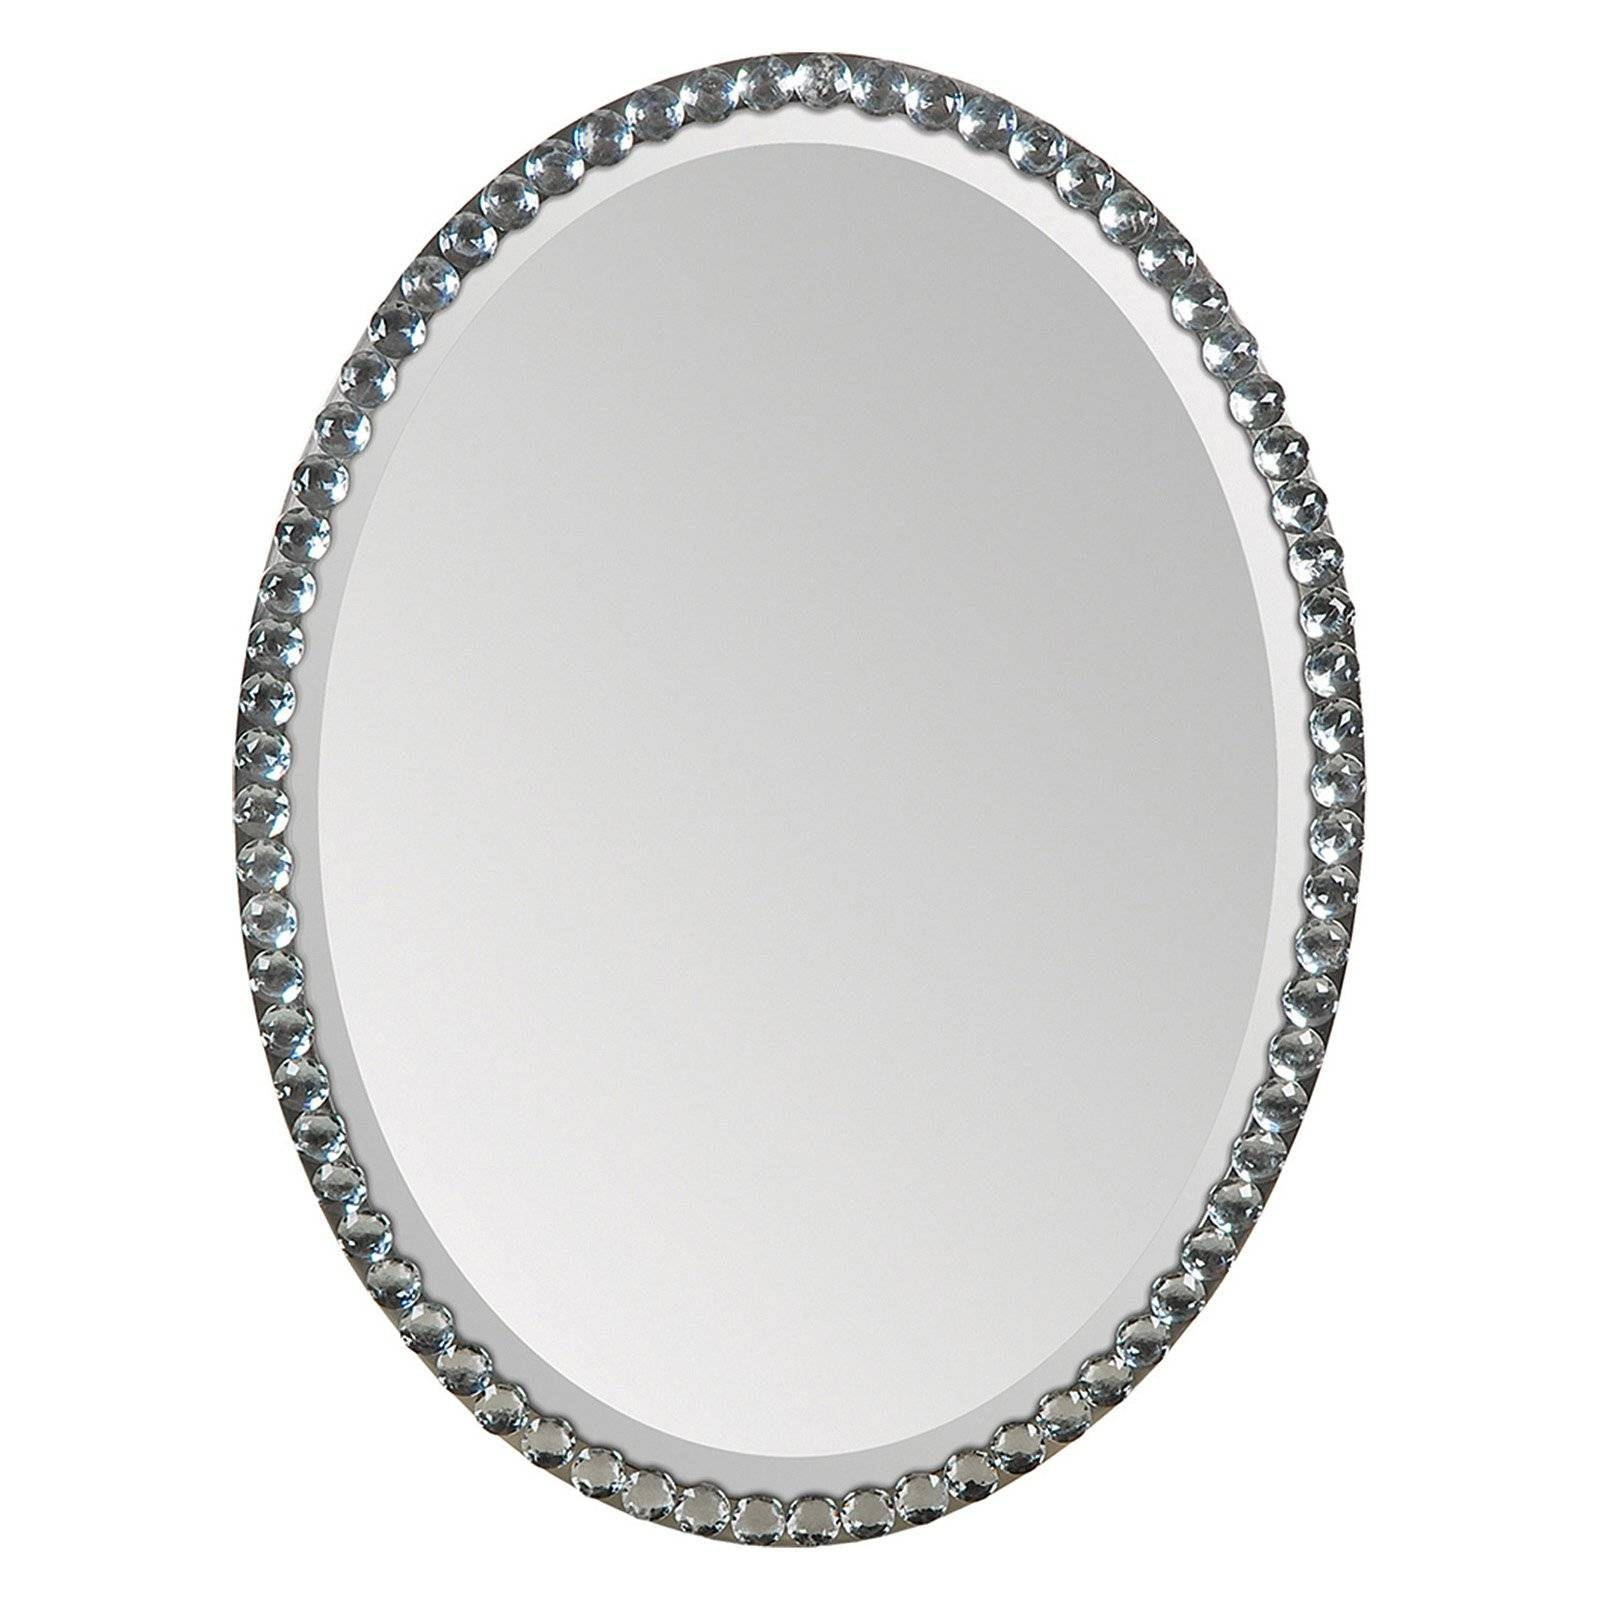 Ren-Wil Oval Crystal Framed Wall Mirror - 24W X 32H In. - Walmart with regard to Oval Silver Mirrors (Image 18 of 25)